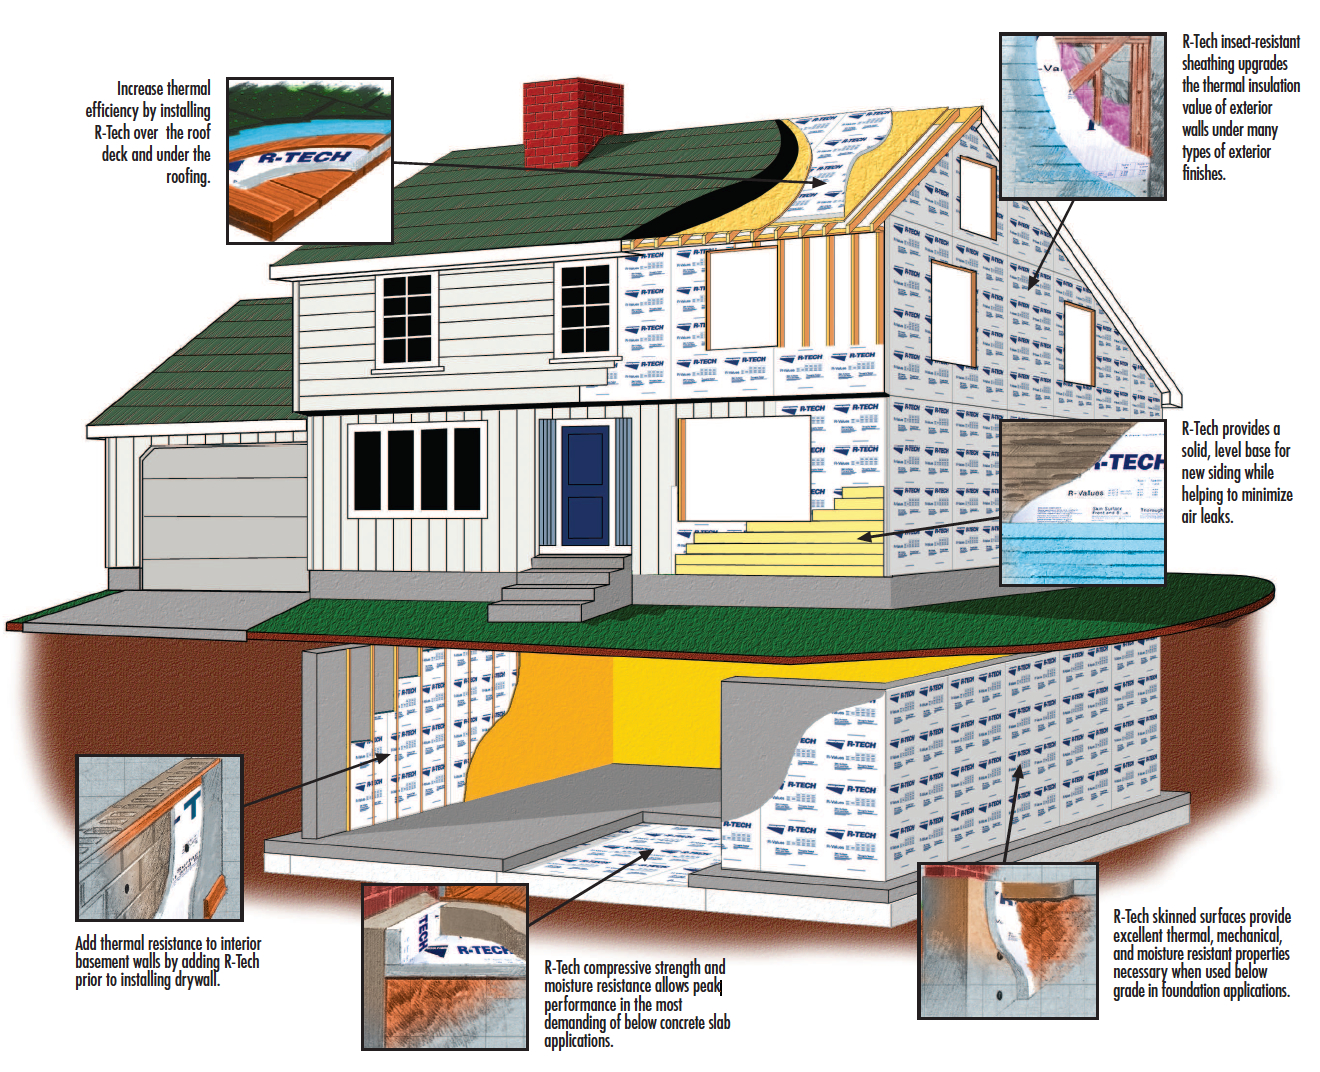 Home insulation solutions insulfoam residential insulation for Types of insulation for basement